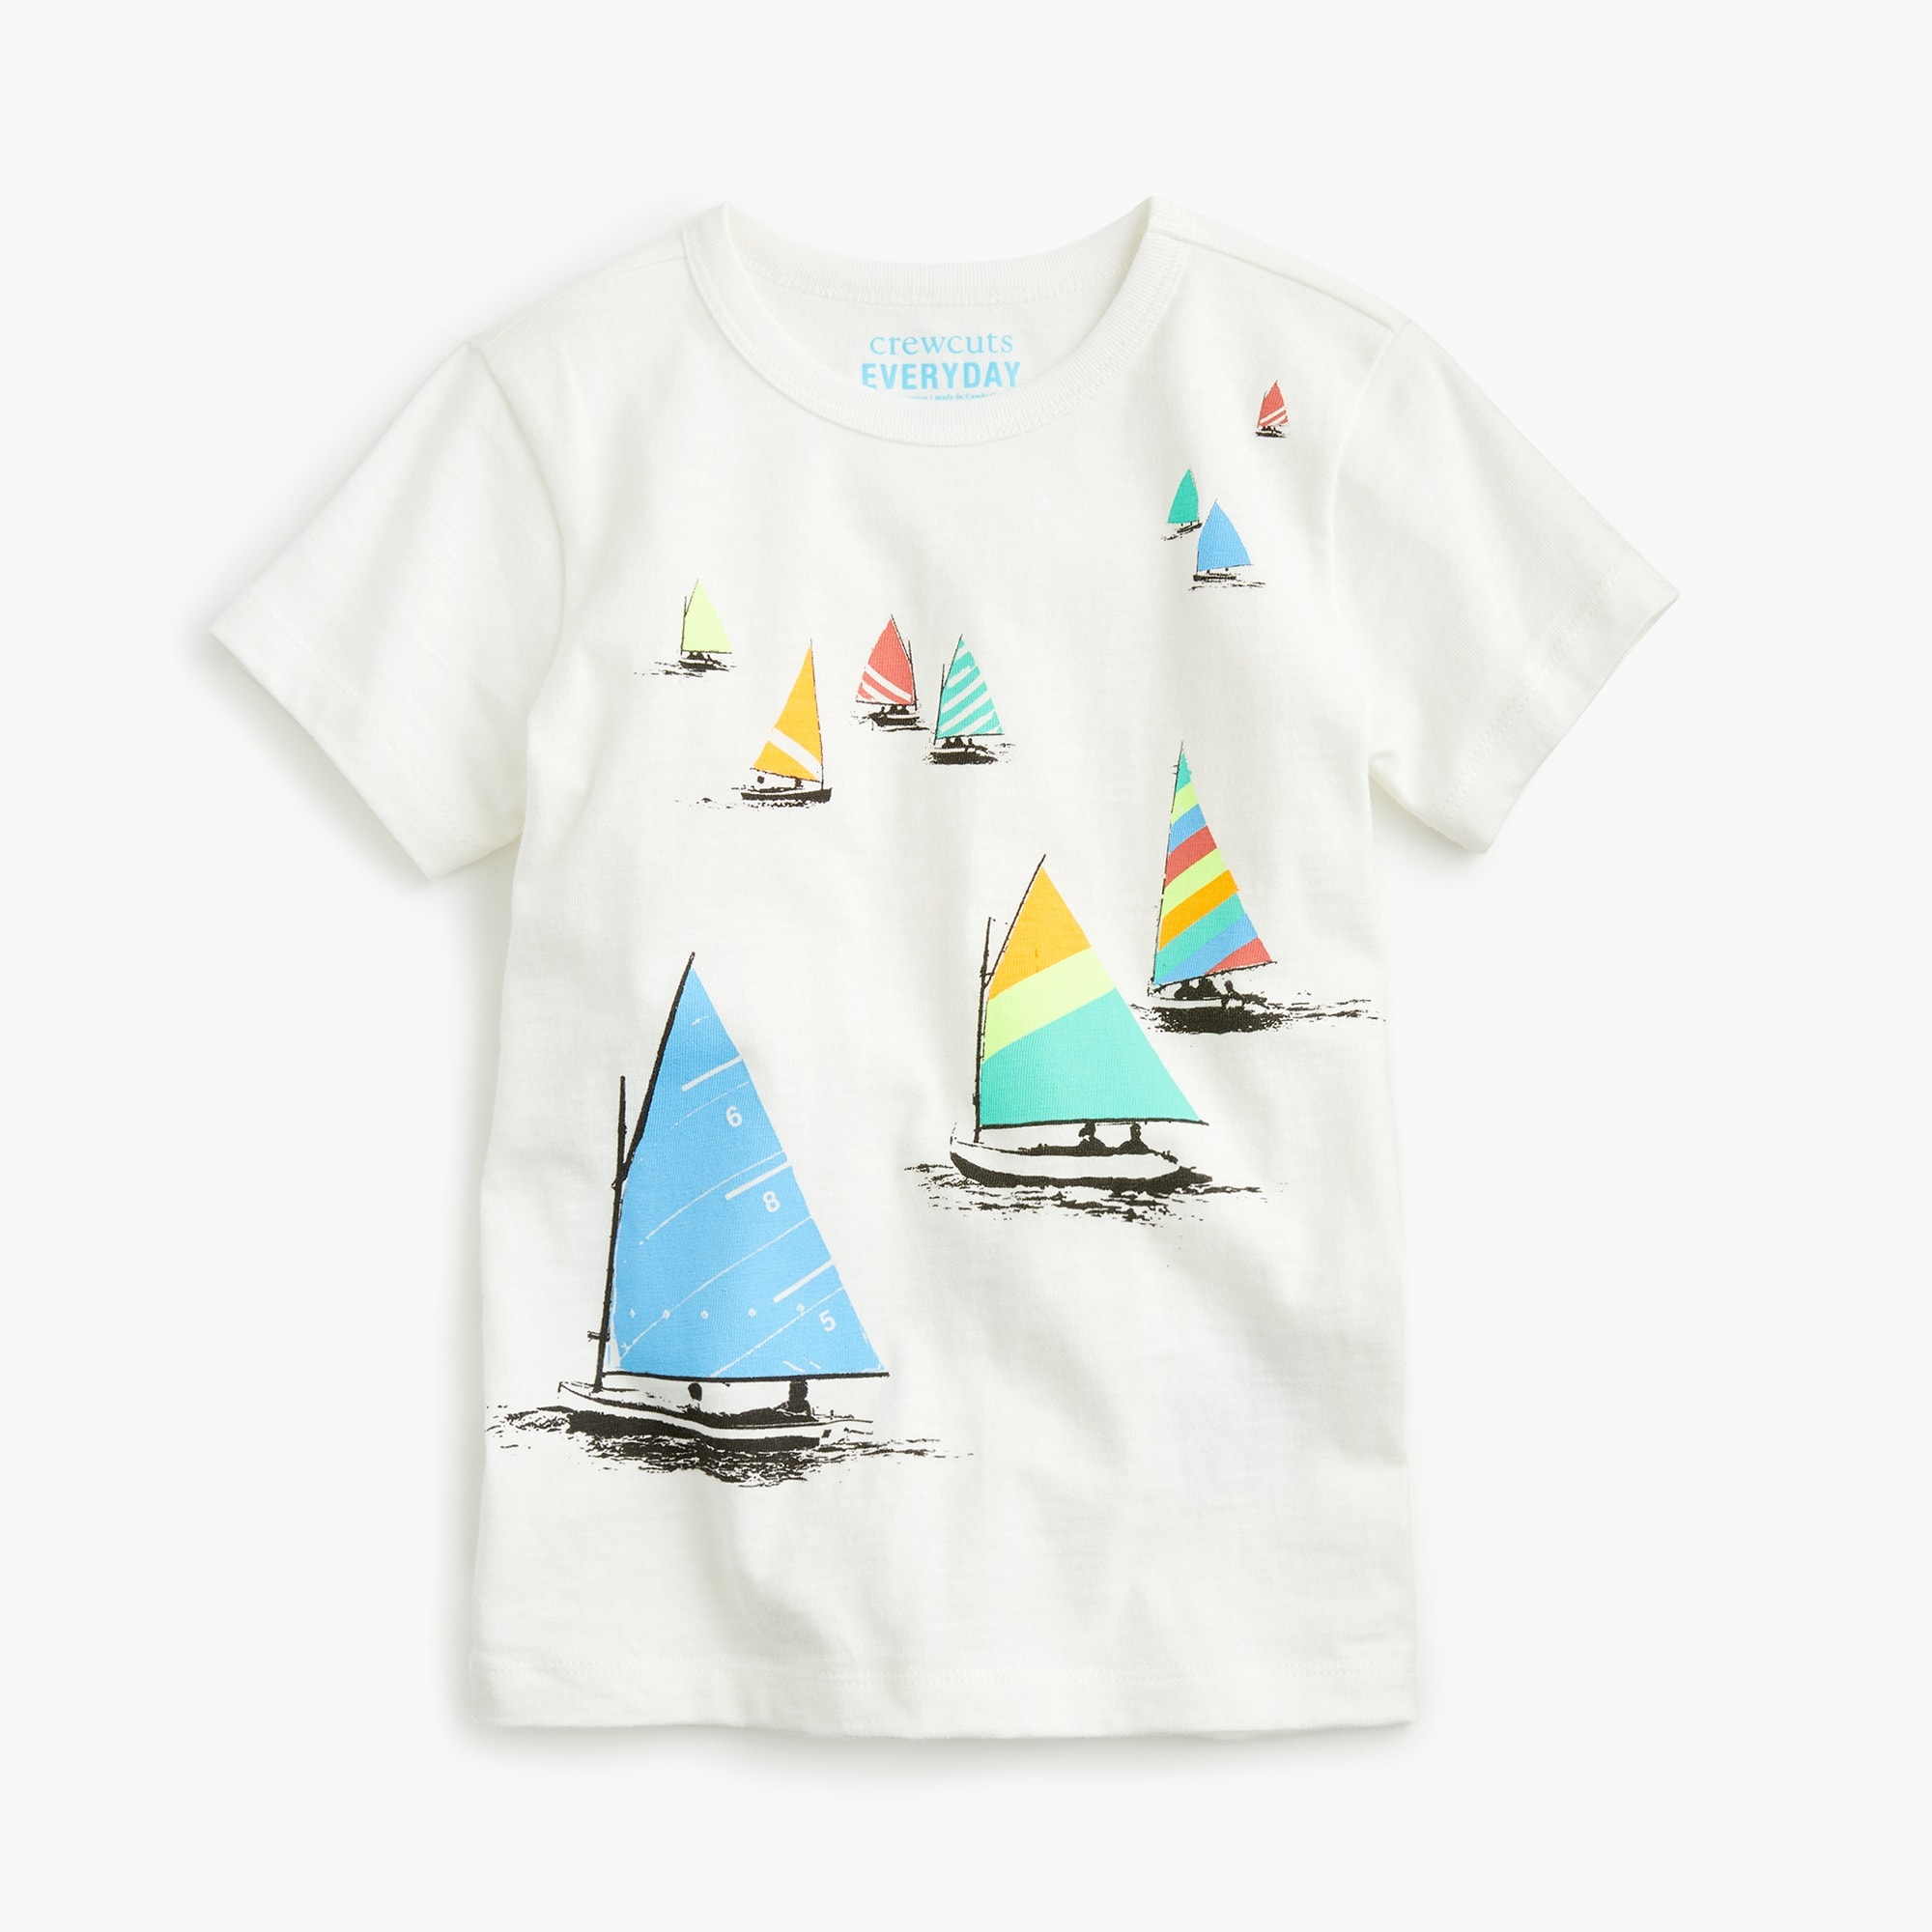 Boys' sailboats T-shirt boy t-shirts & polos c